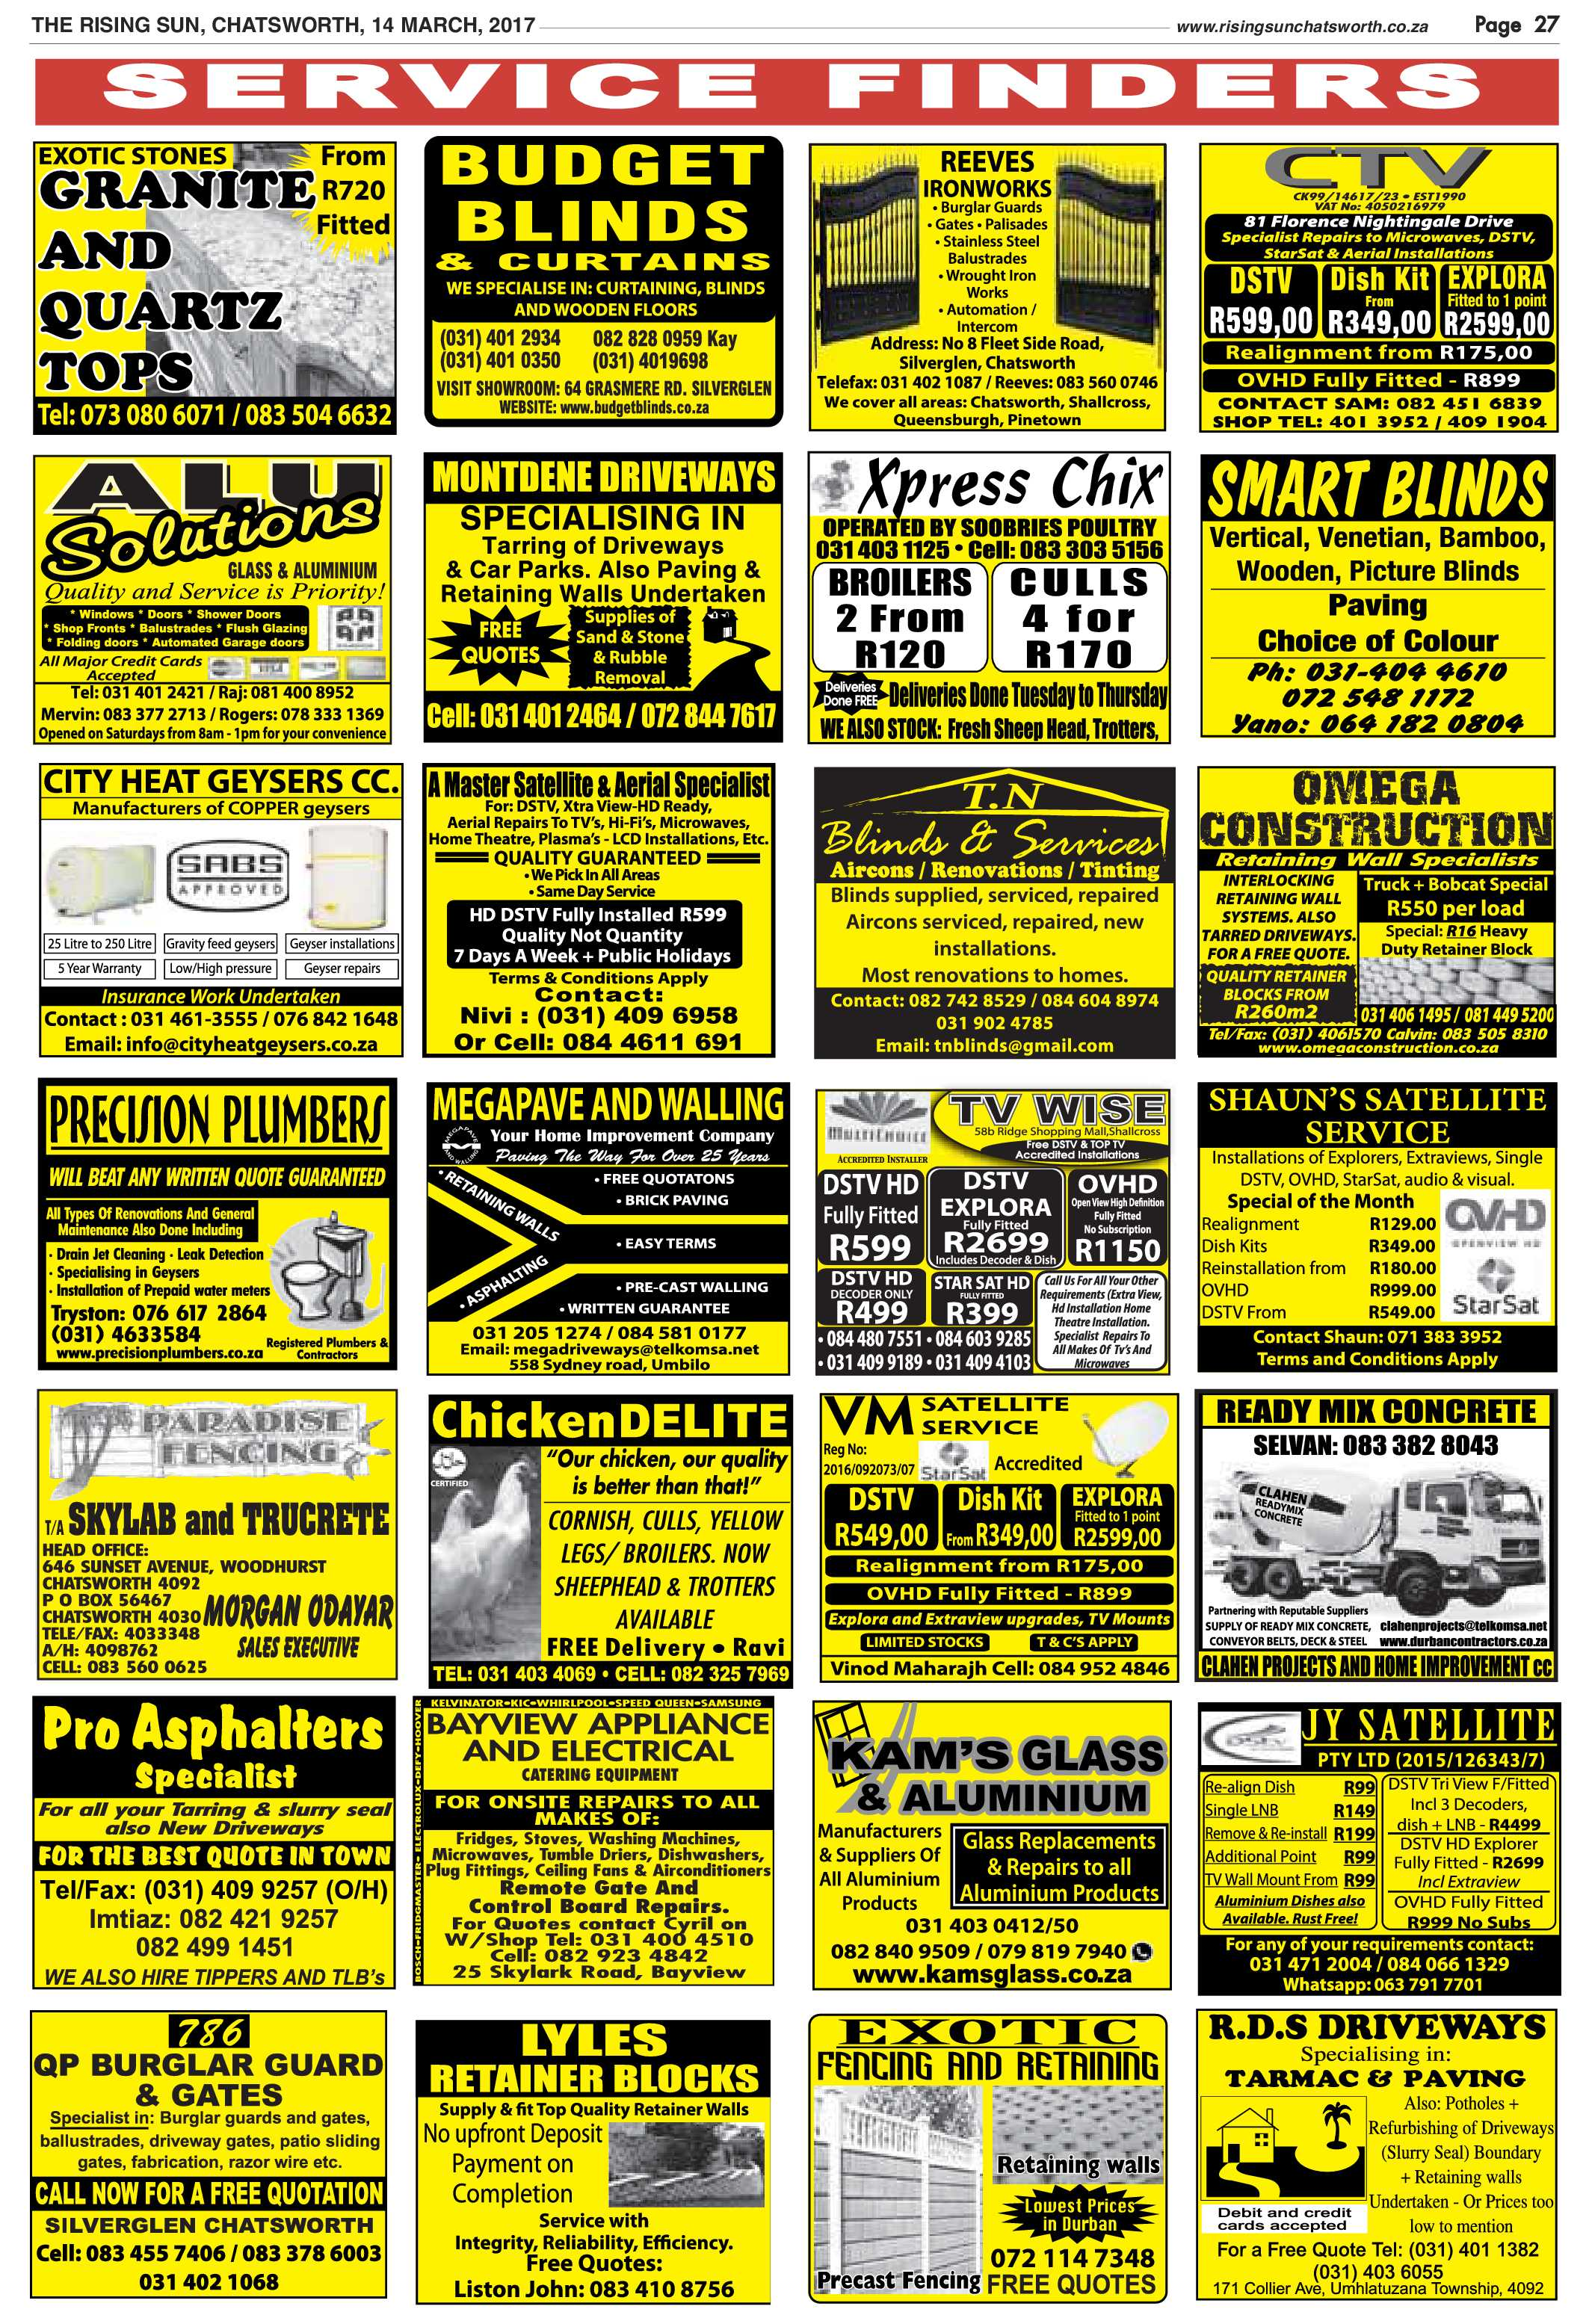 chatsworth-police-slammed-epapers-page-31